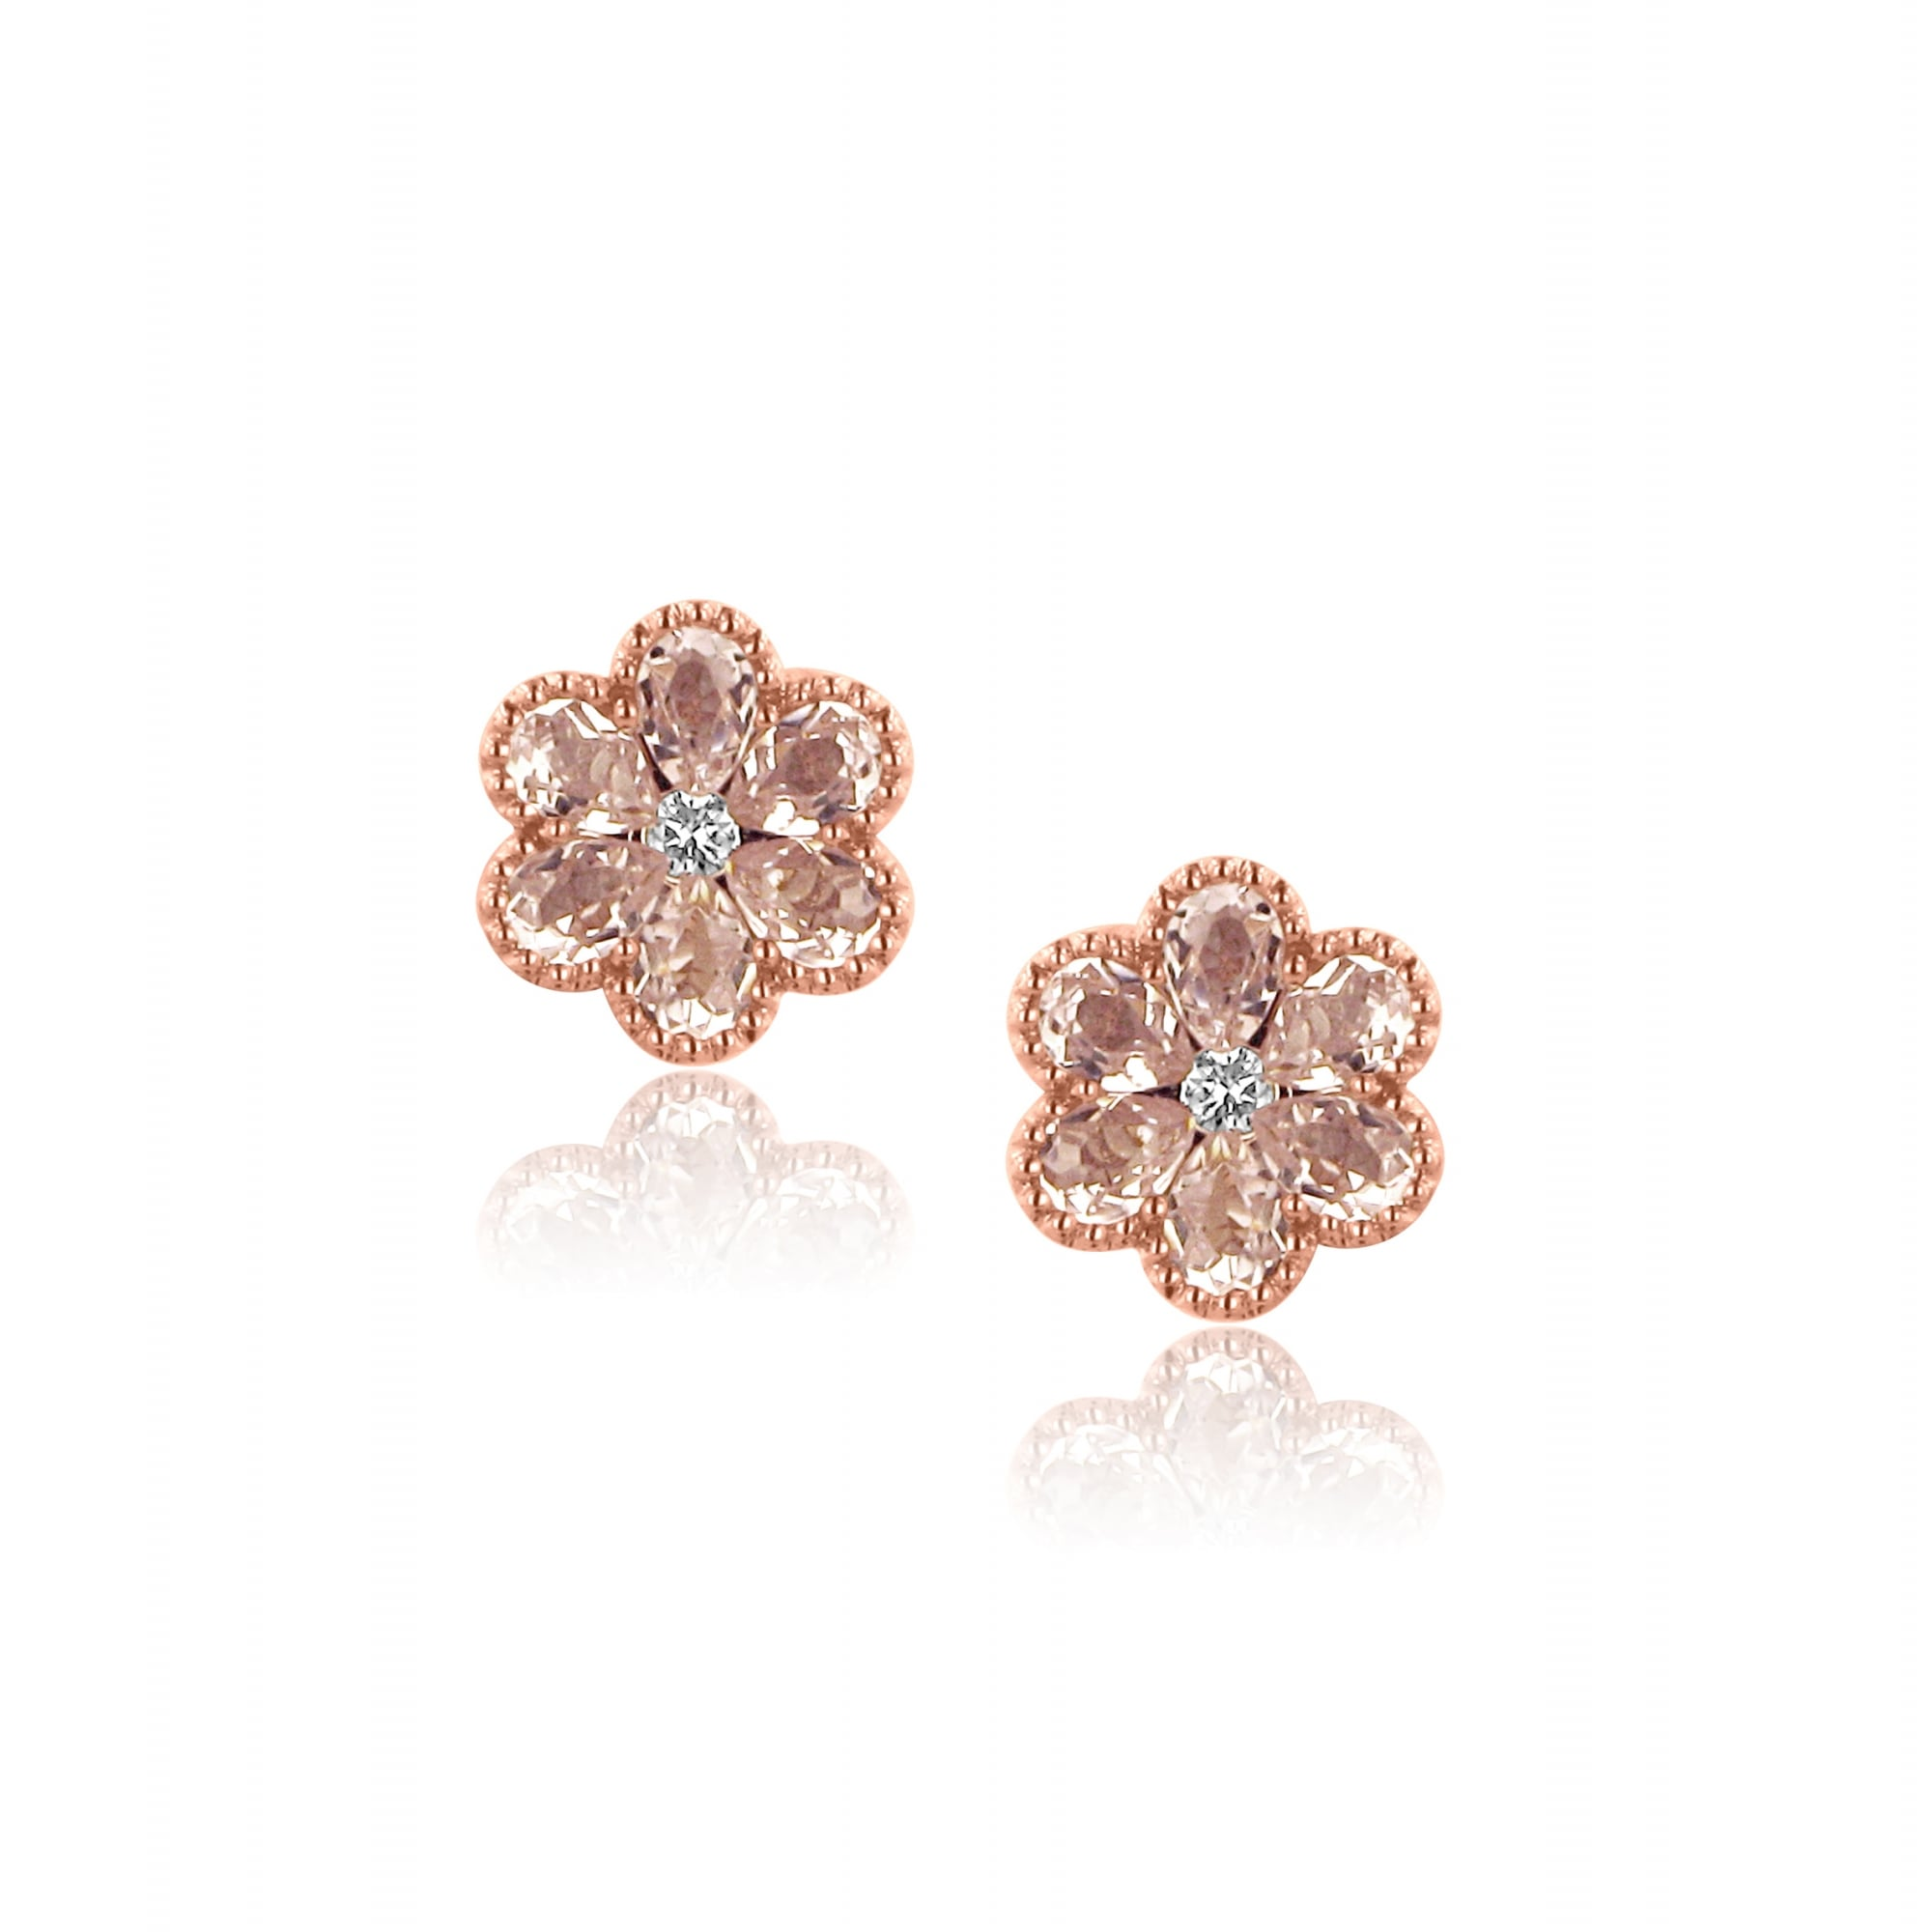 910a348d4bb 18ct Rose Gold Morganite Flower Earrings - Womens from Avanti of Ashbourne  Ltd UK